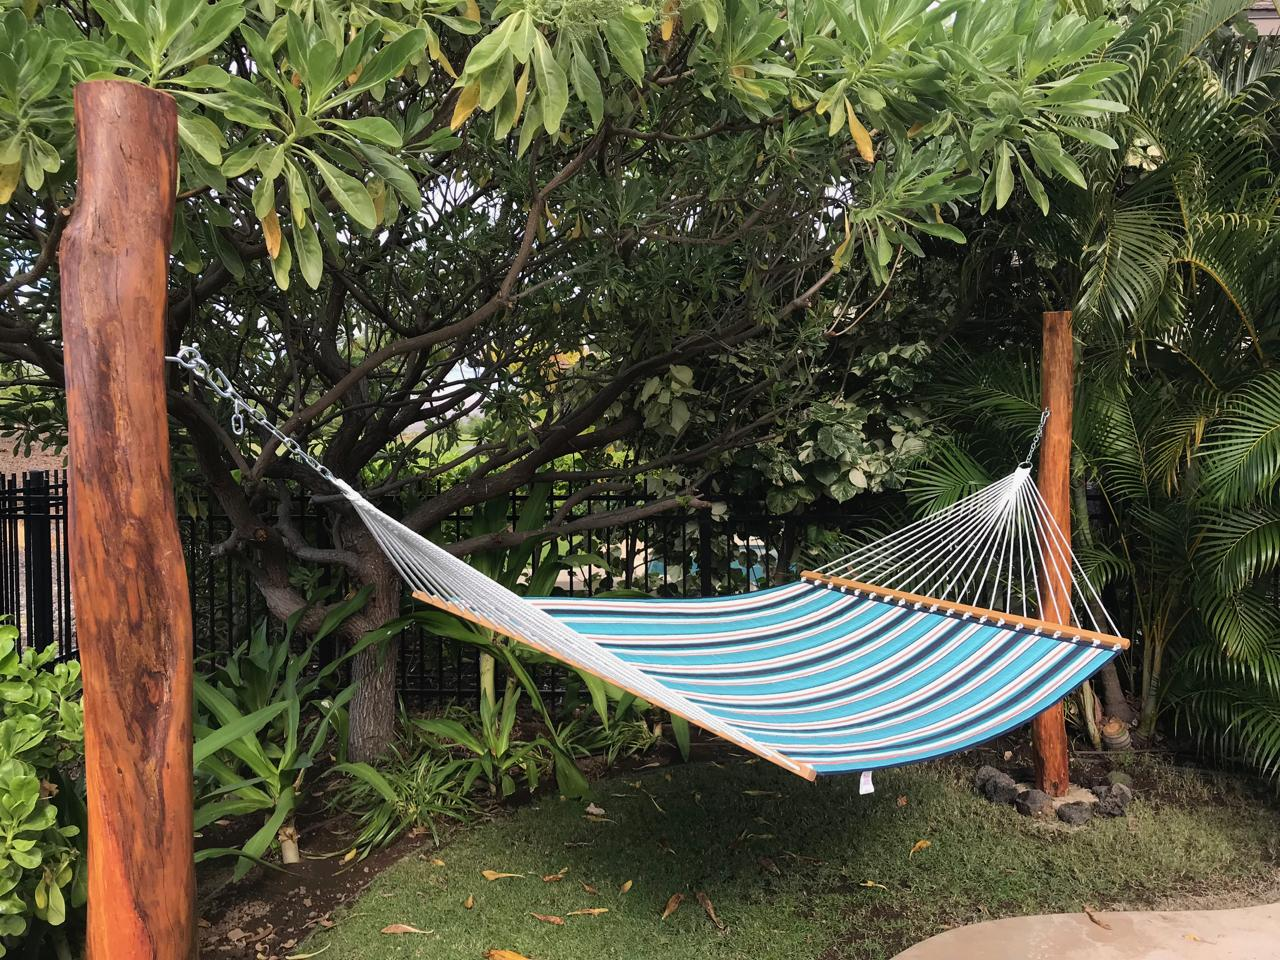 Enjoy an afternoon nap in the double hammock